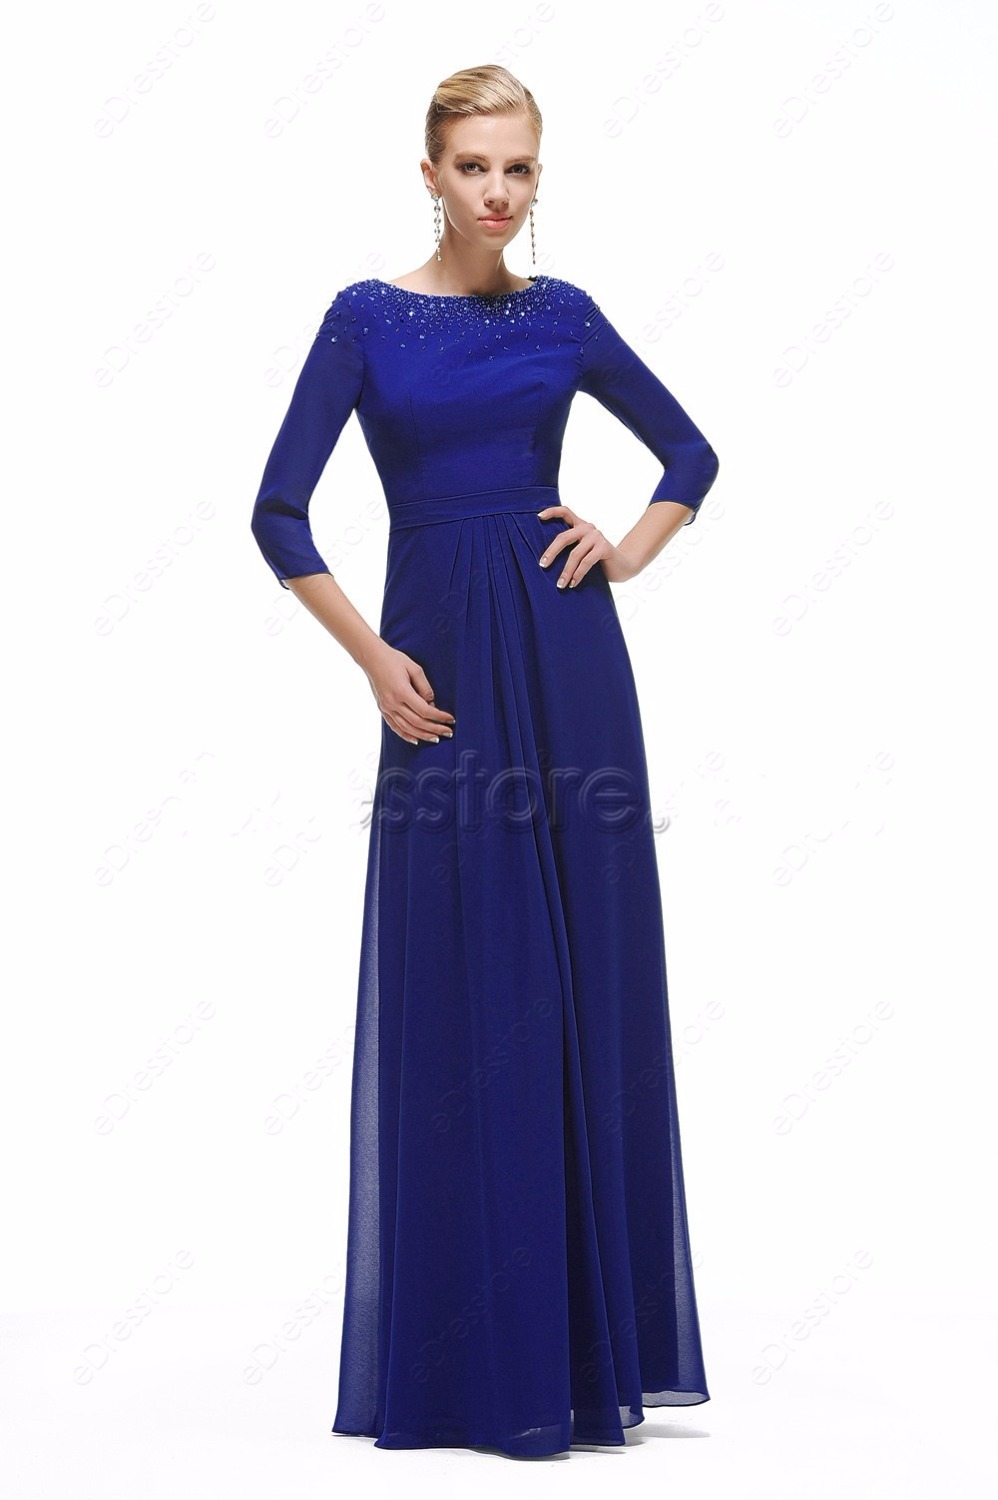 Cecelle 2016 royal blue chiffon modest bridesmaid dresses 34 cecelle 2016 royal blue chiffon modest bridesmaid dresses 34 sleeves a line long beaded wedding guests modest dresses cheap in bridesmaid dresses from ombrellifo Choice Image